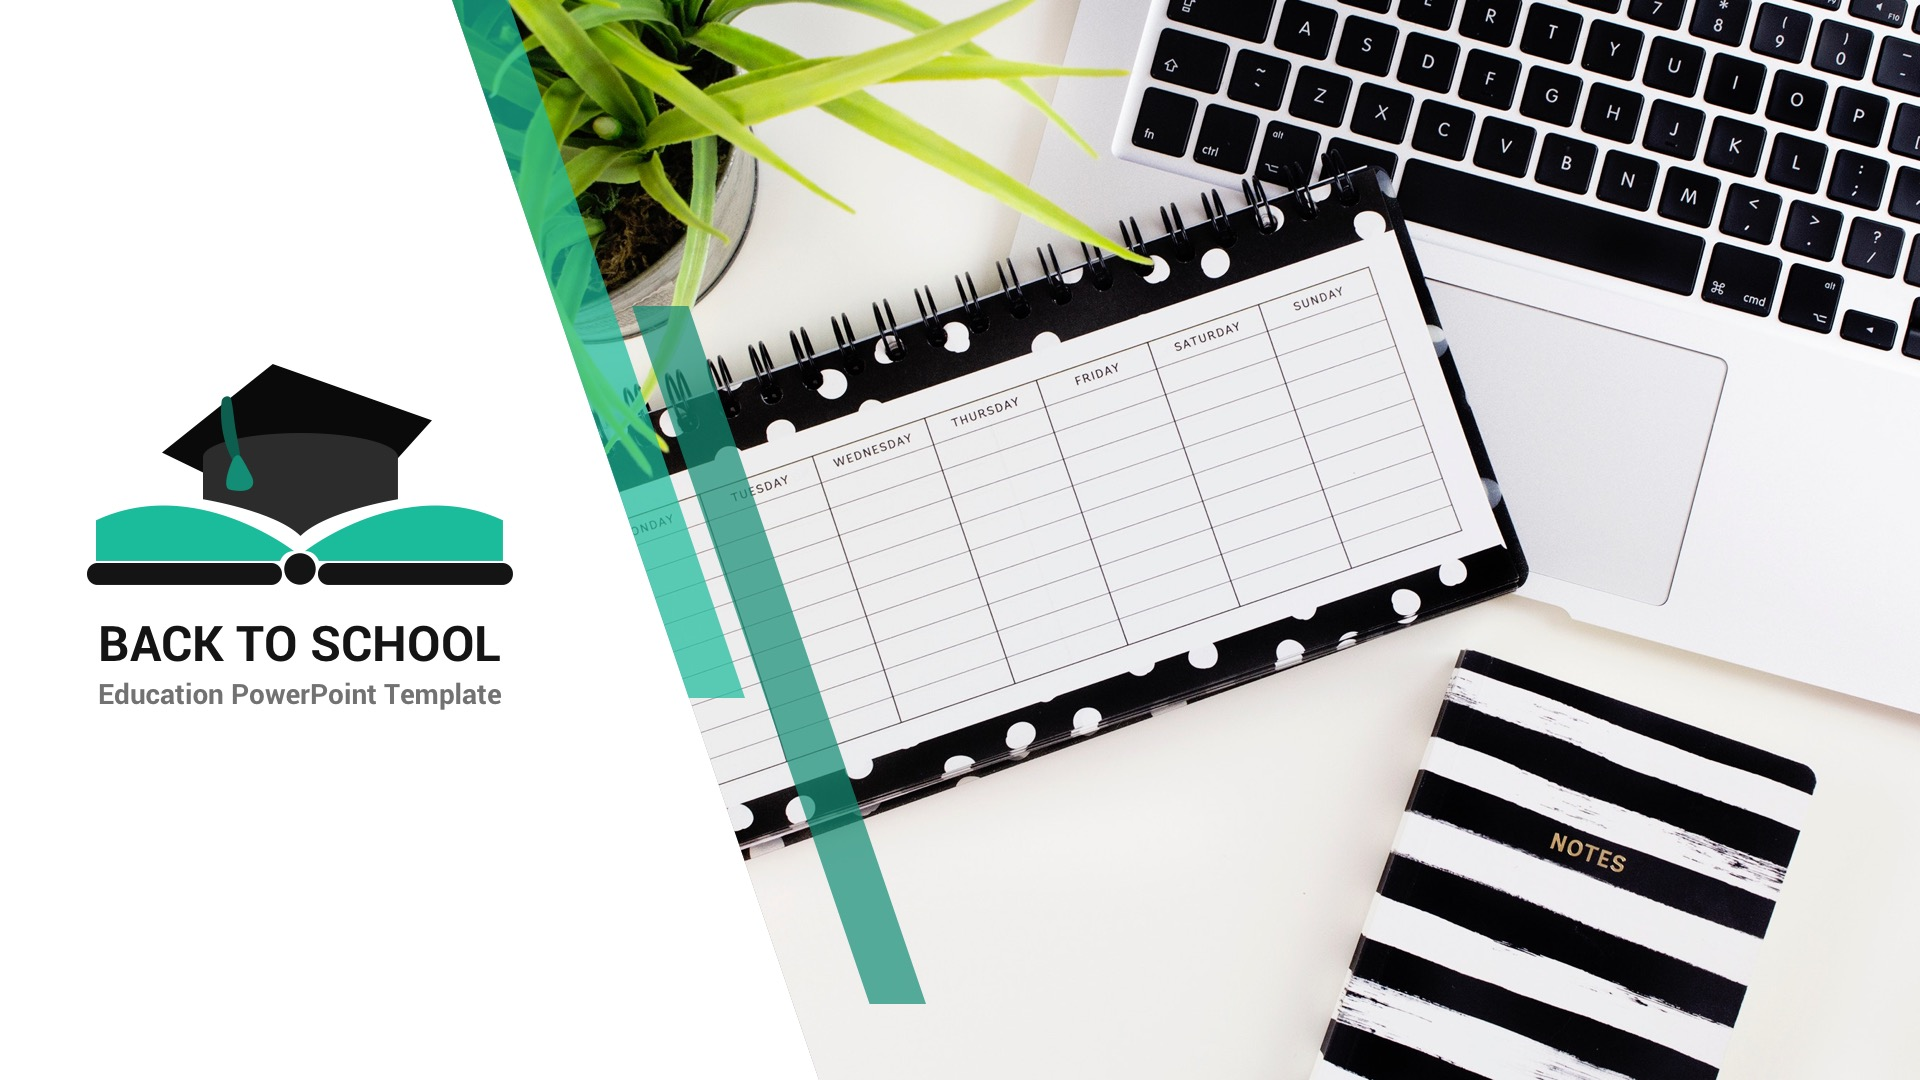 Back to School - Education & Learning PowerPoint Presentation Template 2